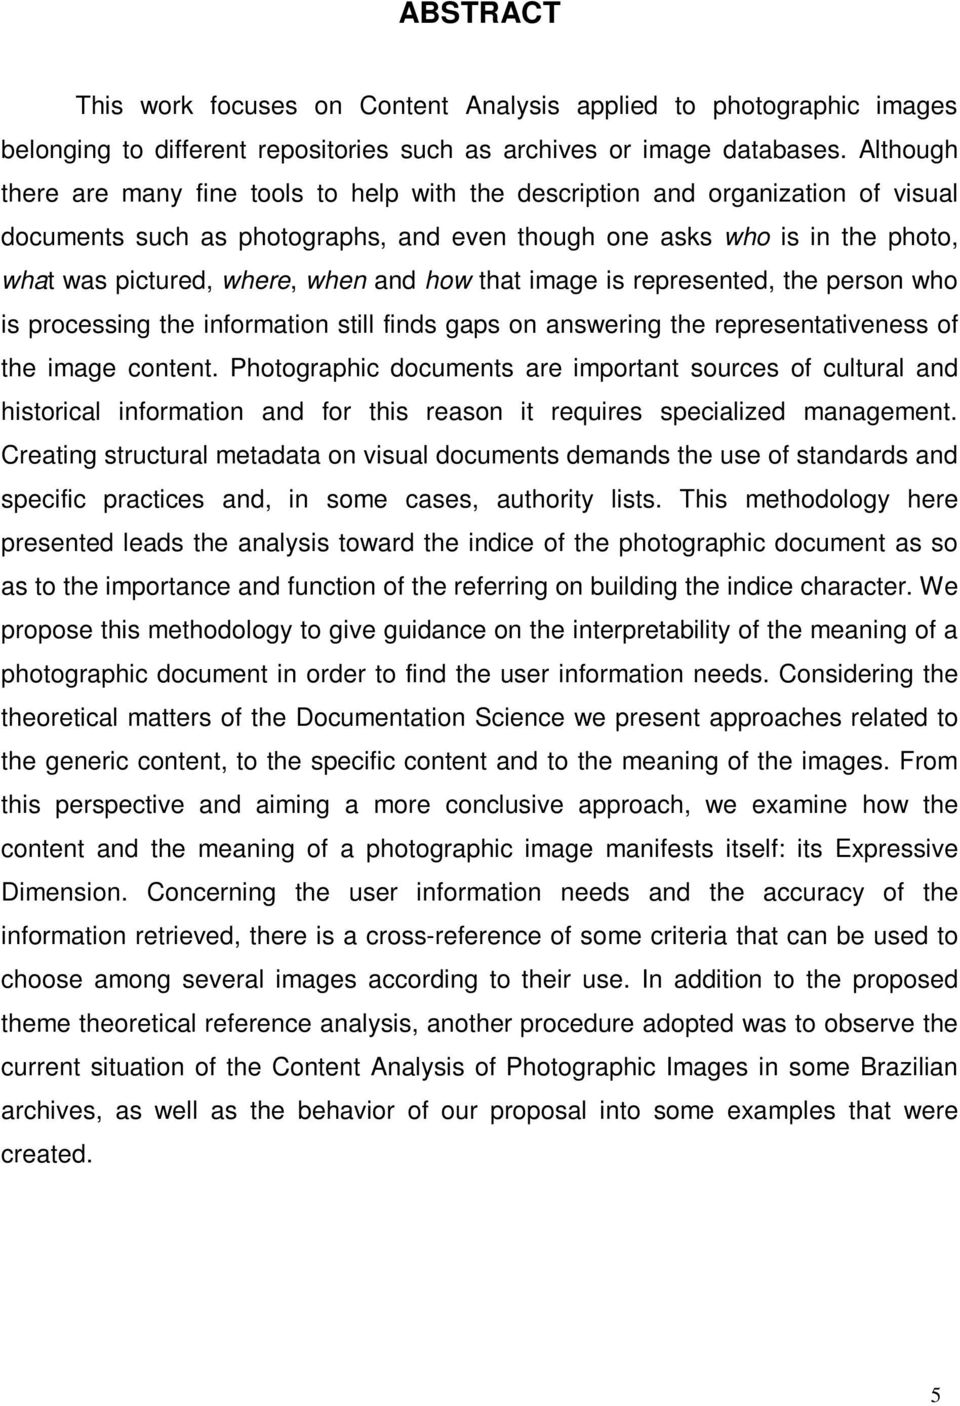 and how that image is represented, the person who is processing the information still finds gaps on answering the representativeness of the image content.